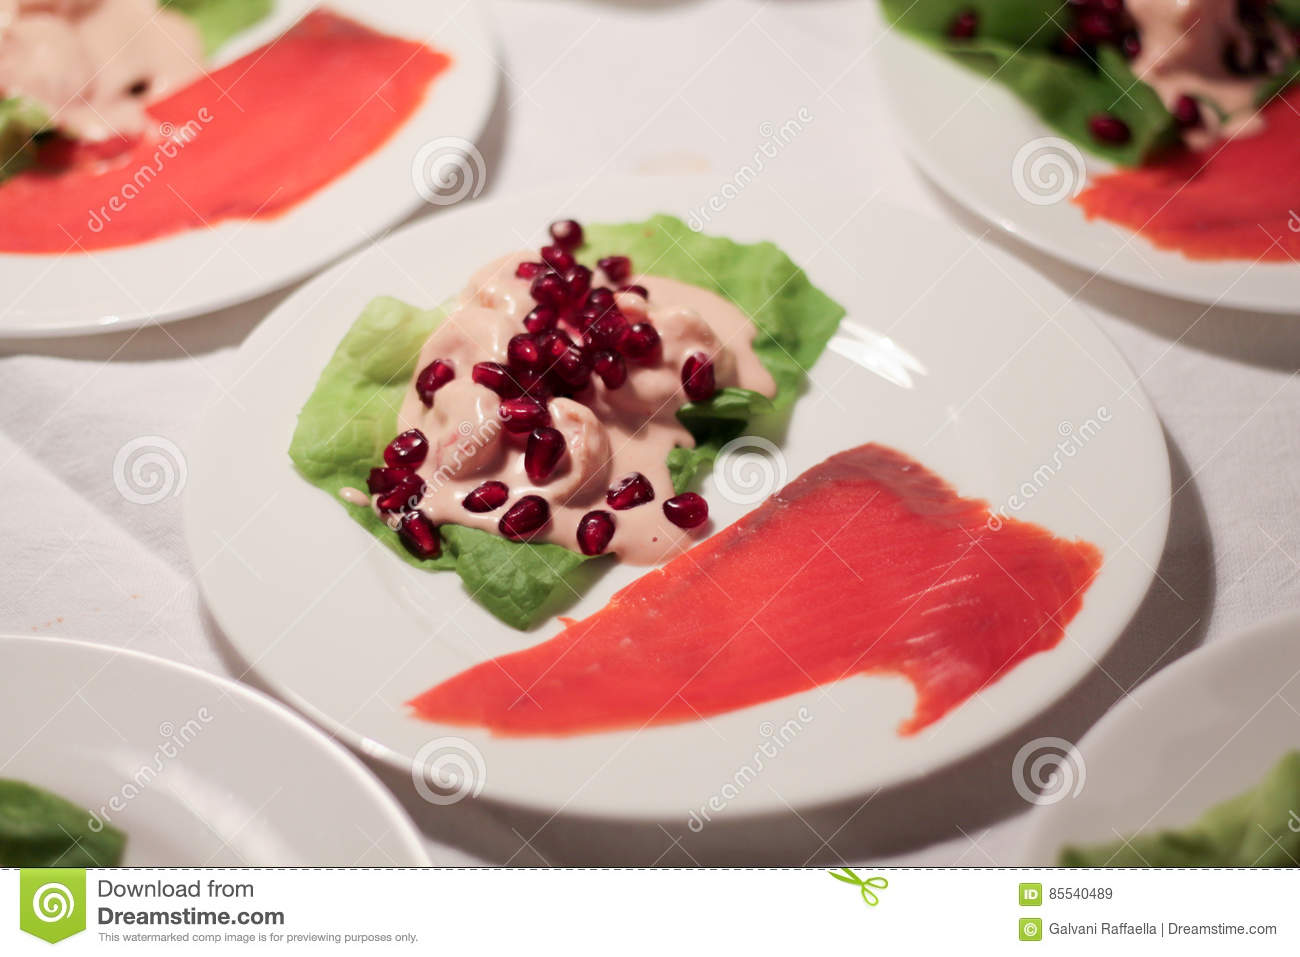 Cocktail Of Shrimp To Pomegranate And Wild Smoked Salmon Stock Image Image Of Nutrition Sauce 85540489